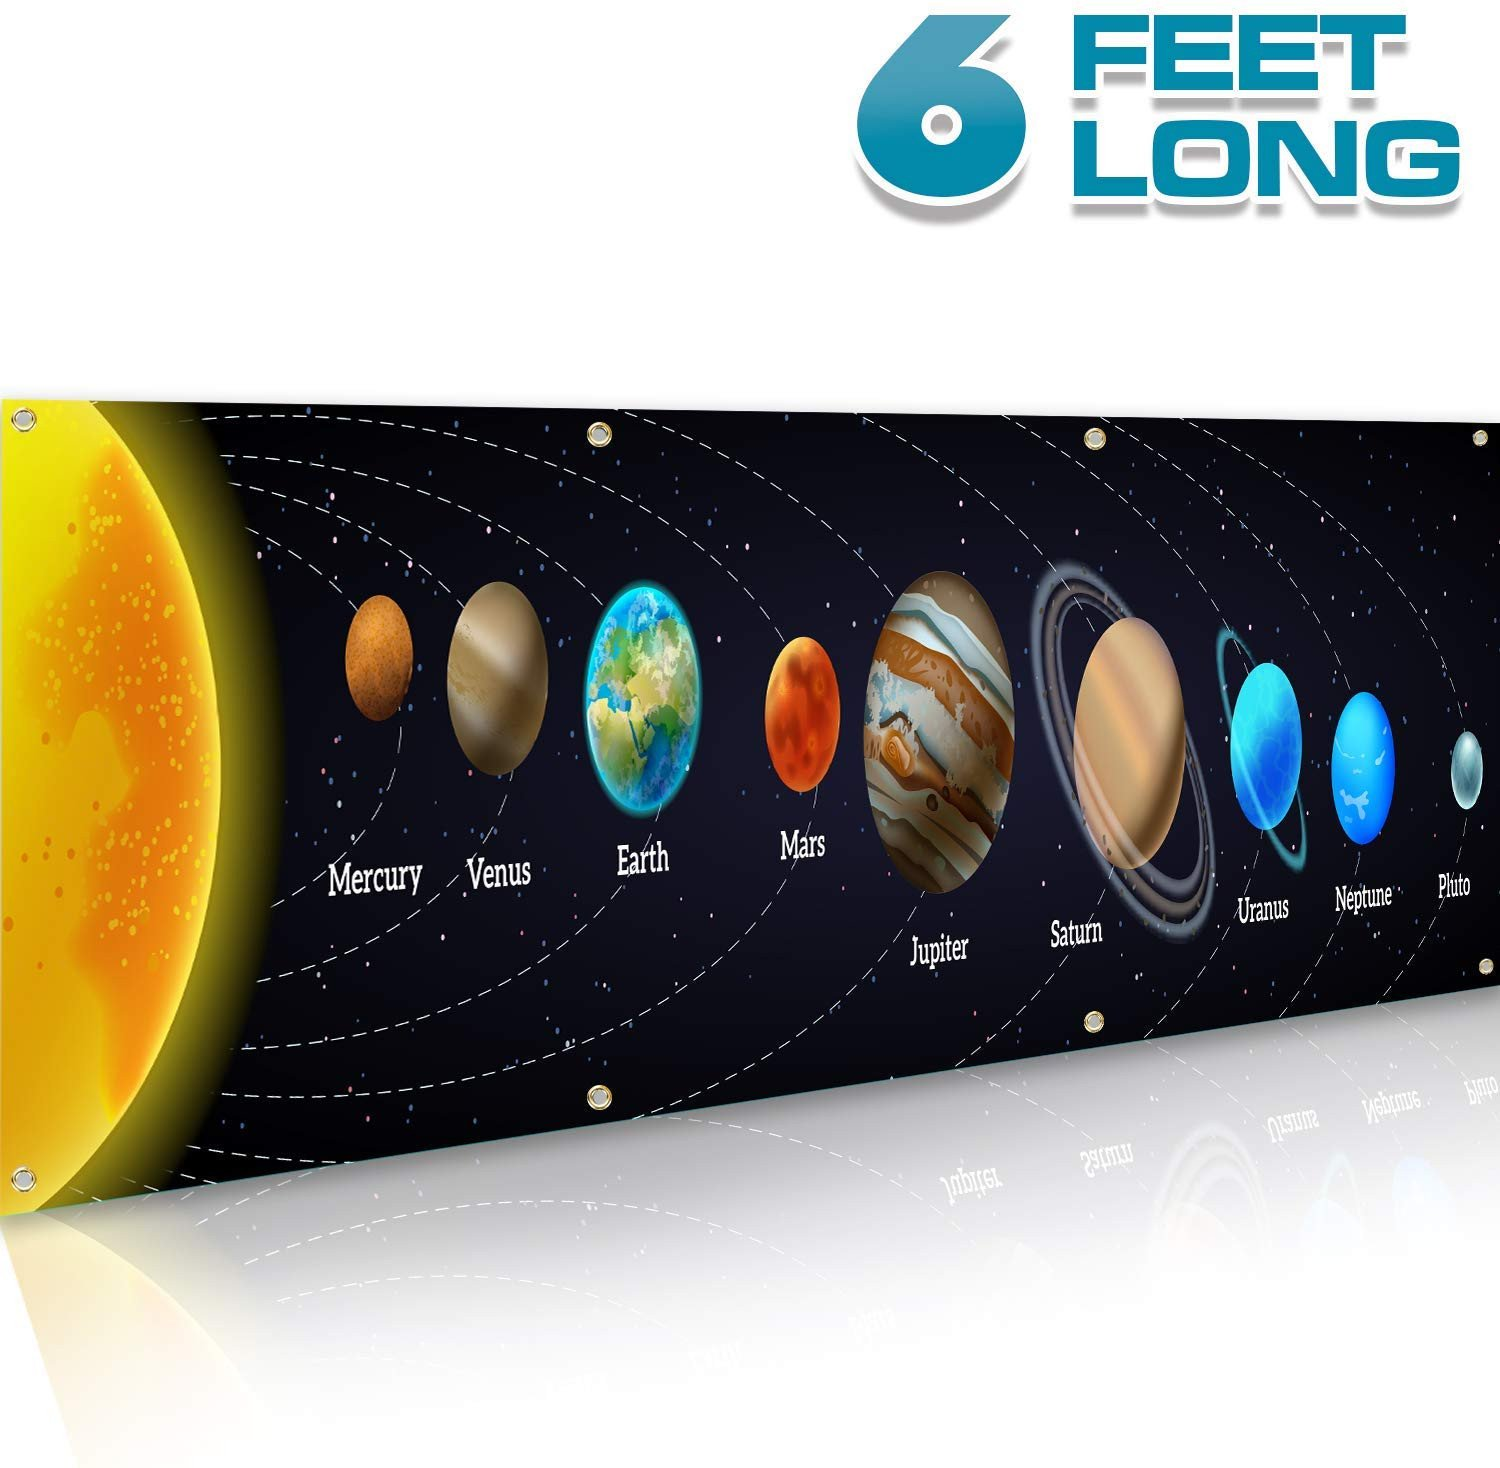 Solar System Bedroom Decor Luxury Bigtime Signs solar System Poster Science Banner 16 Inches X 6 Feet Classroom Decorations Vinyl Sign Educational Reference Space Vibrant Colors